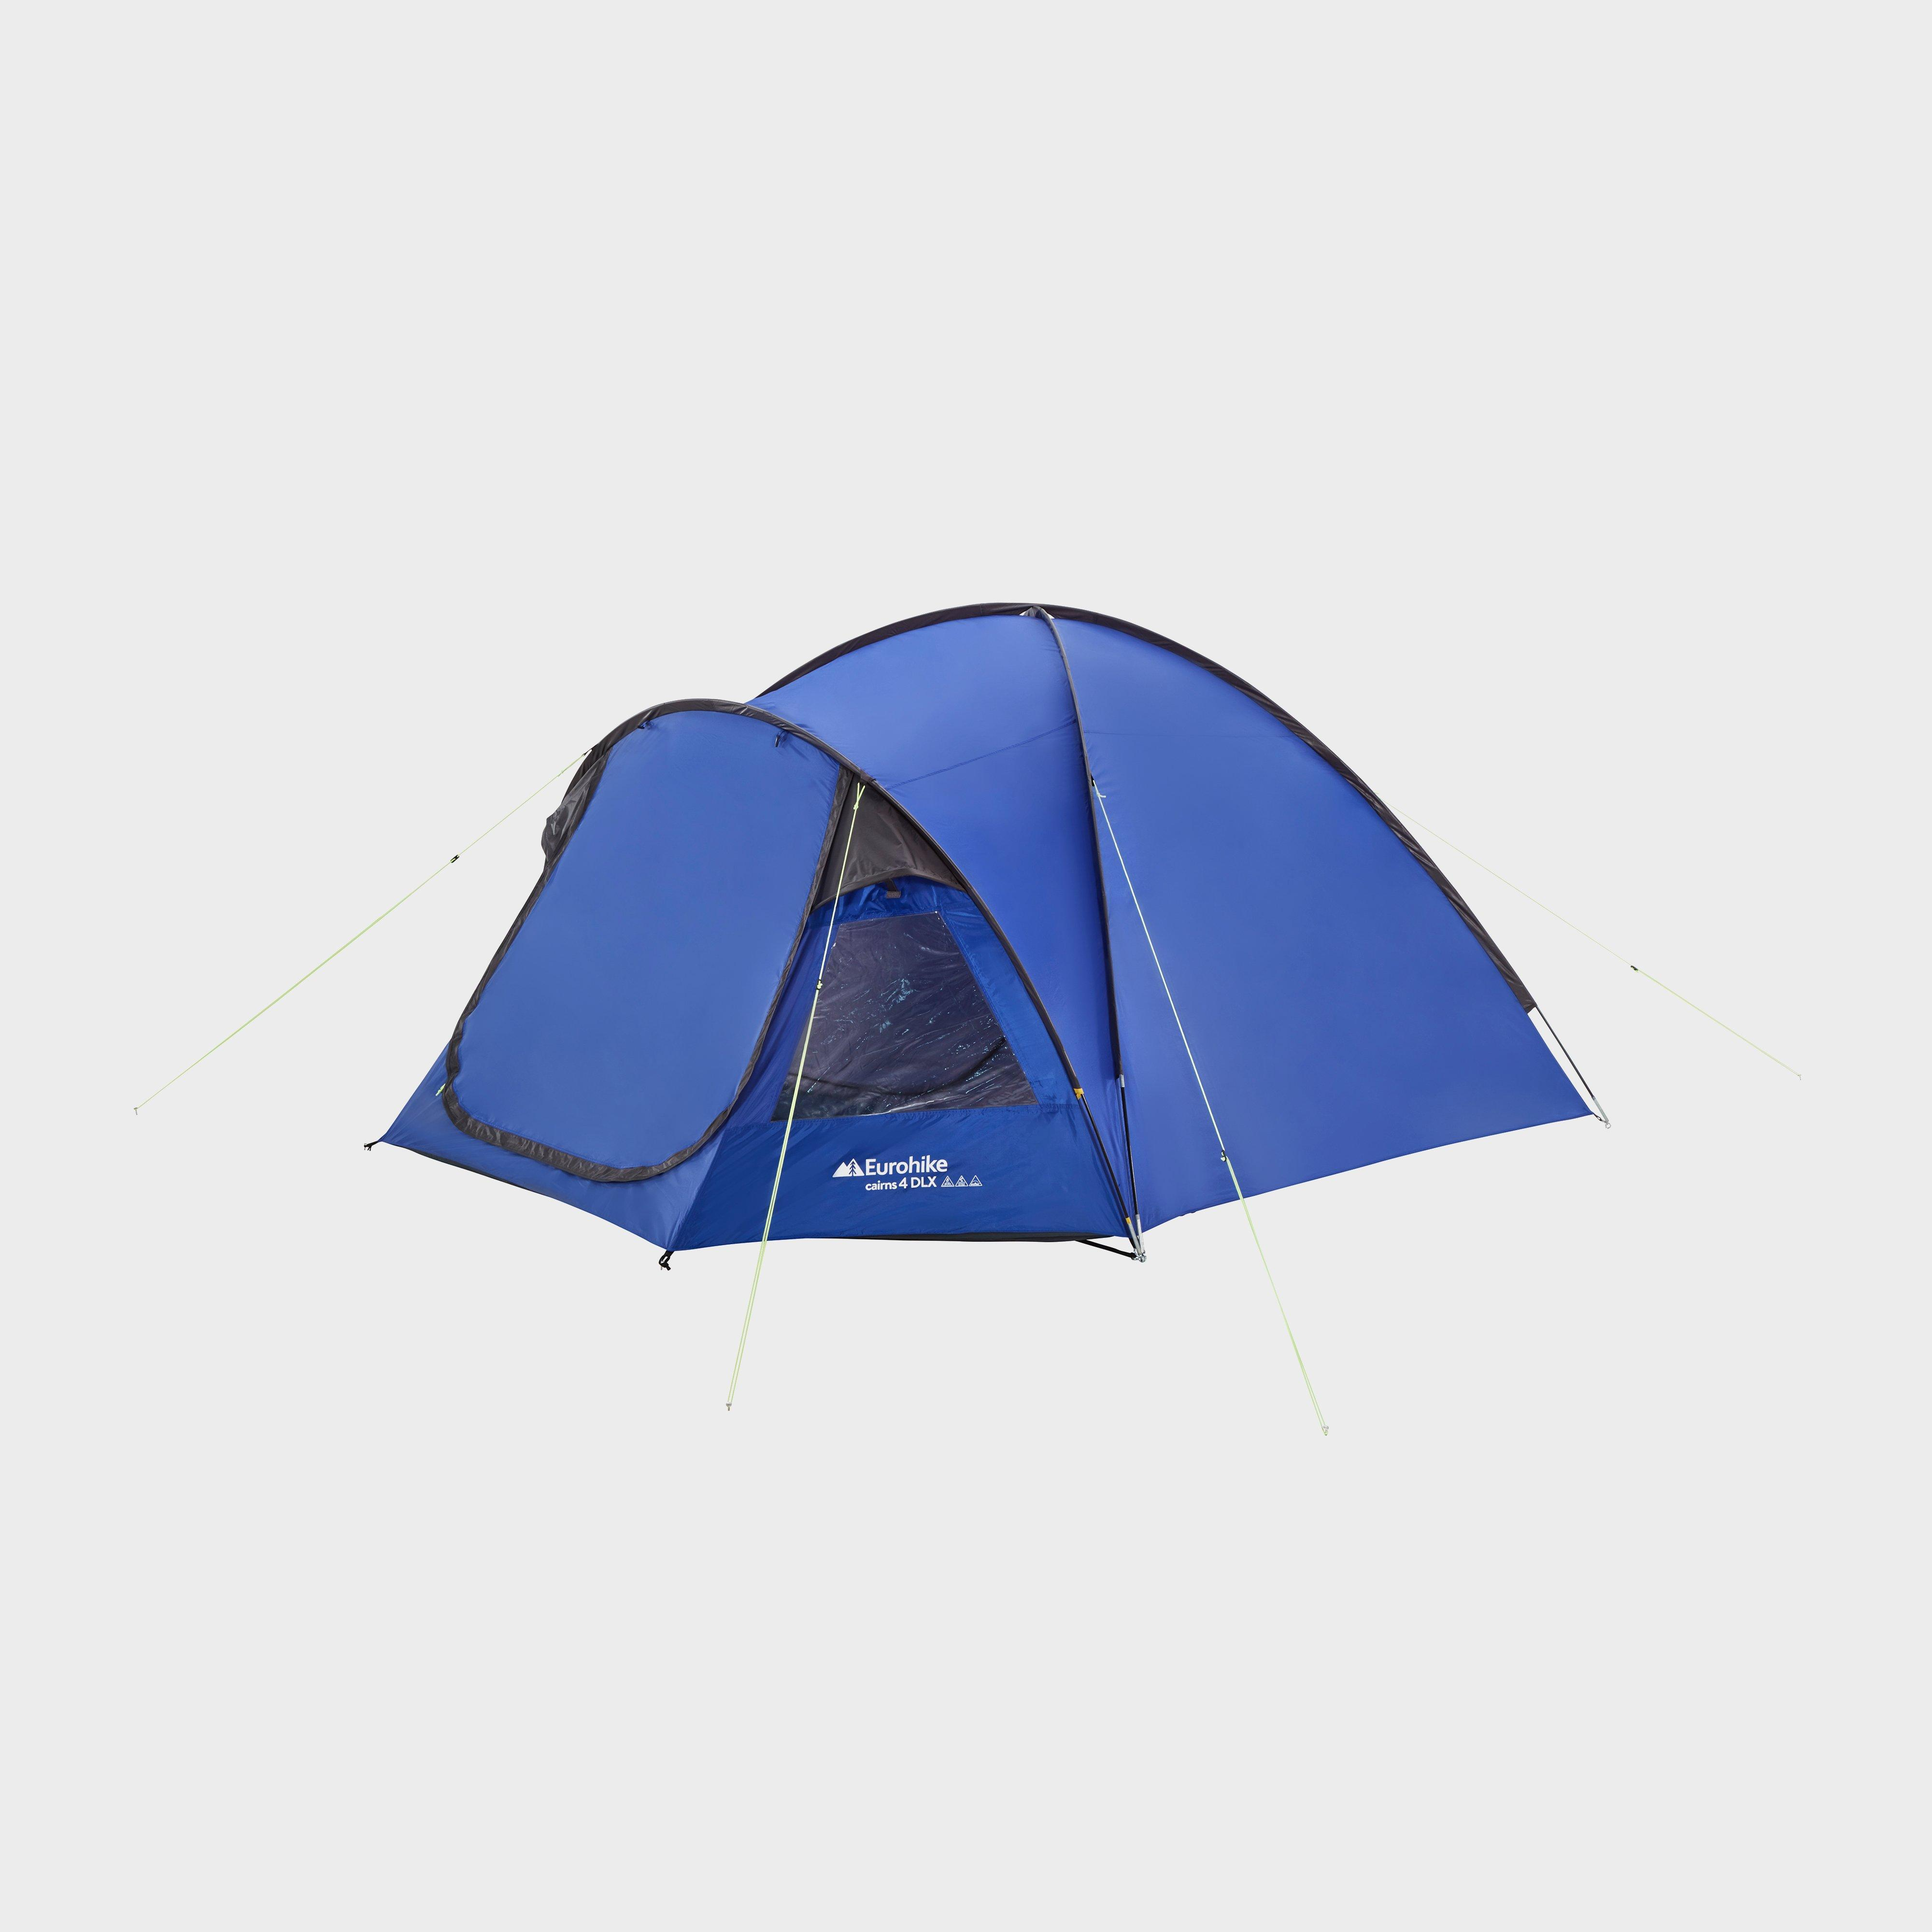 Eurohike Cairns 4 Deluxe Tent - Blue/Mbl, Blue/MBL